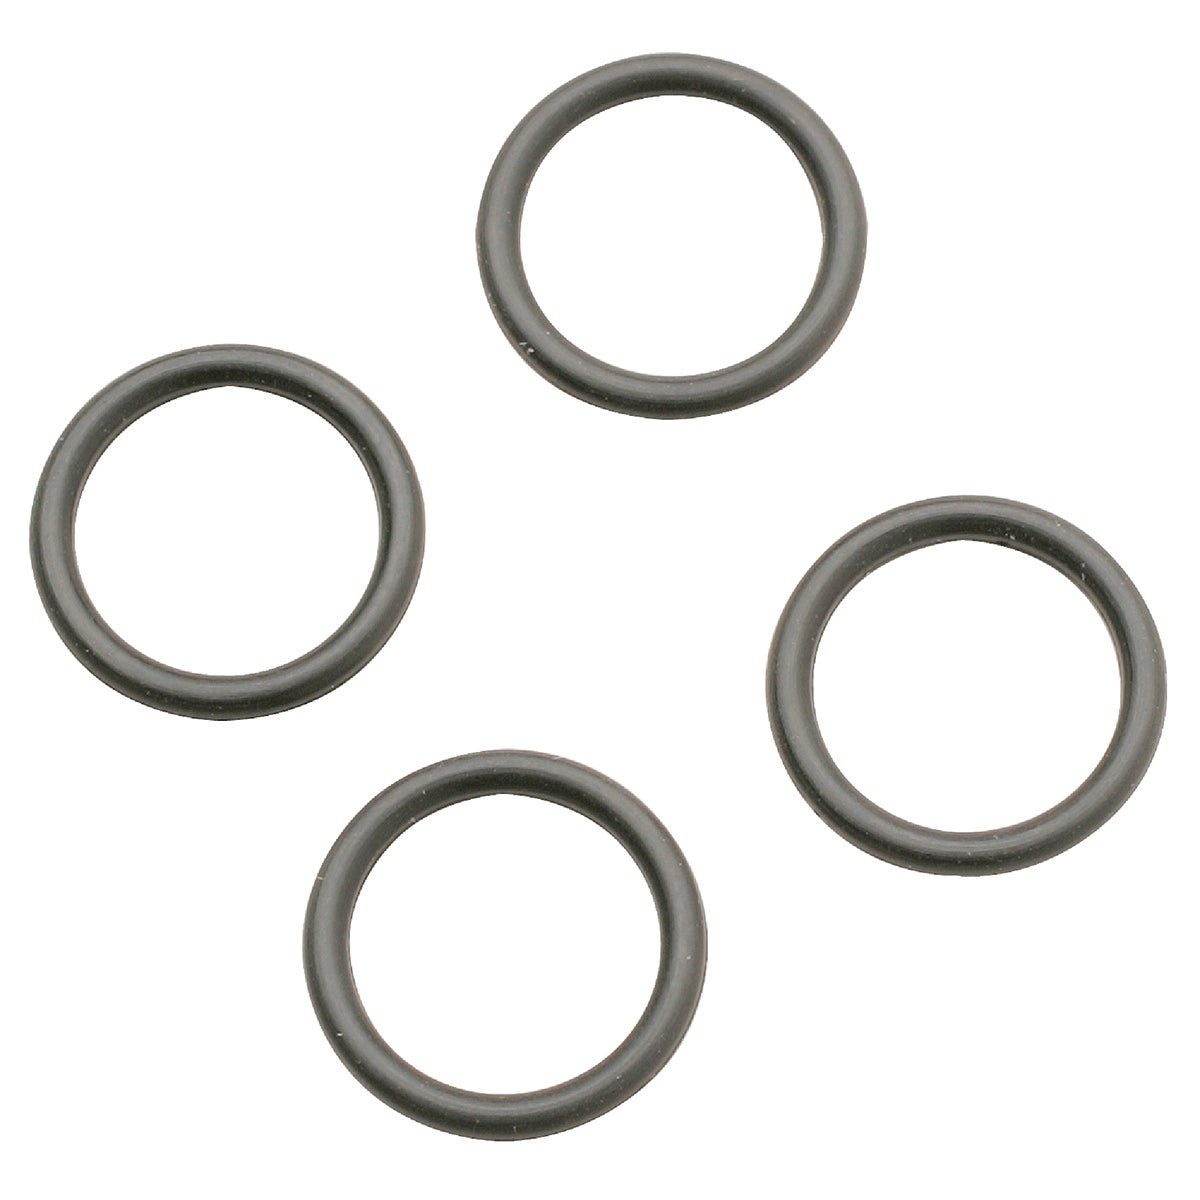 "9/16""ID O-RINGS - 402488 by Plumb Pak/keeney Mfg"